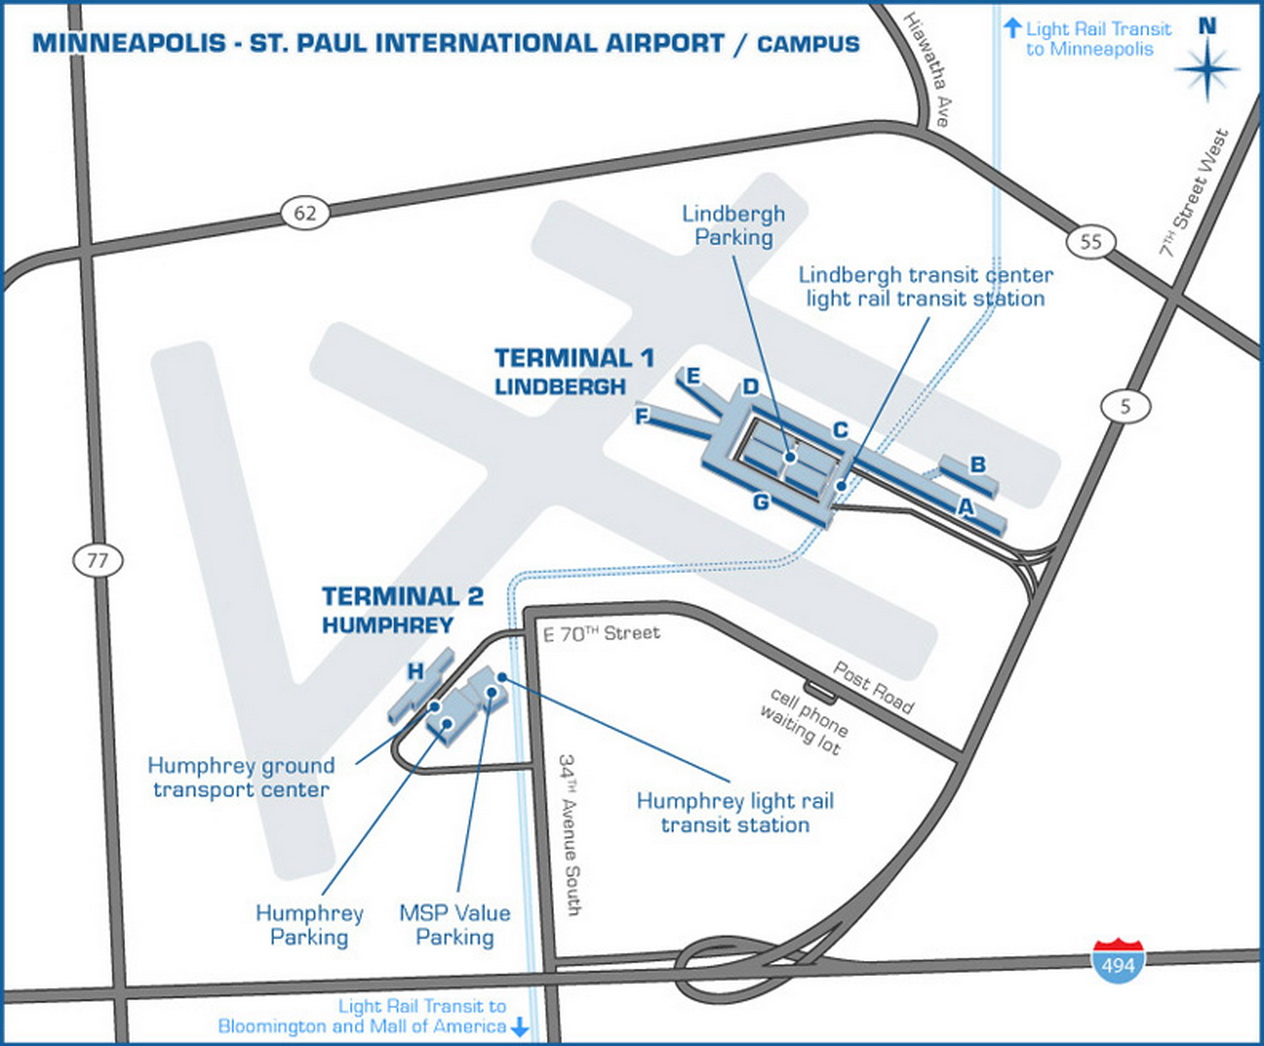 airport parking maps for minneapolis nashville new orleans newark rh aviationexplorer com new orleans airport parking options new orleans airport parking status